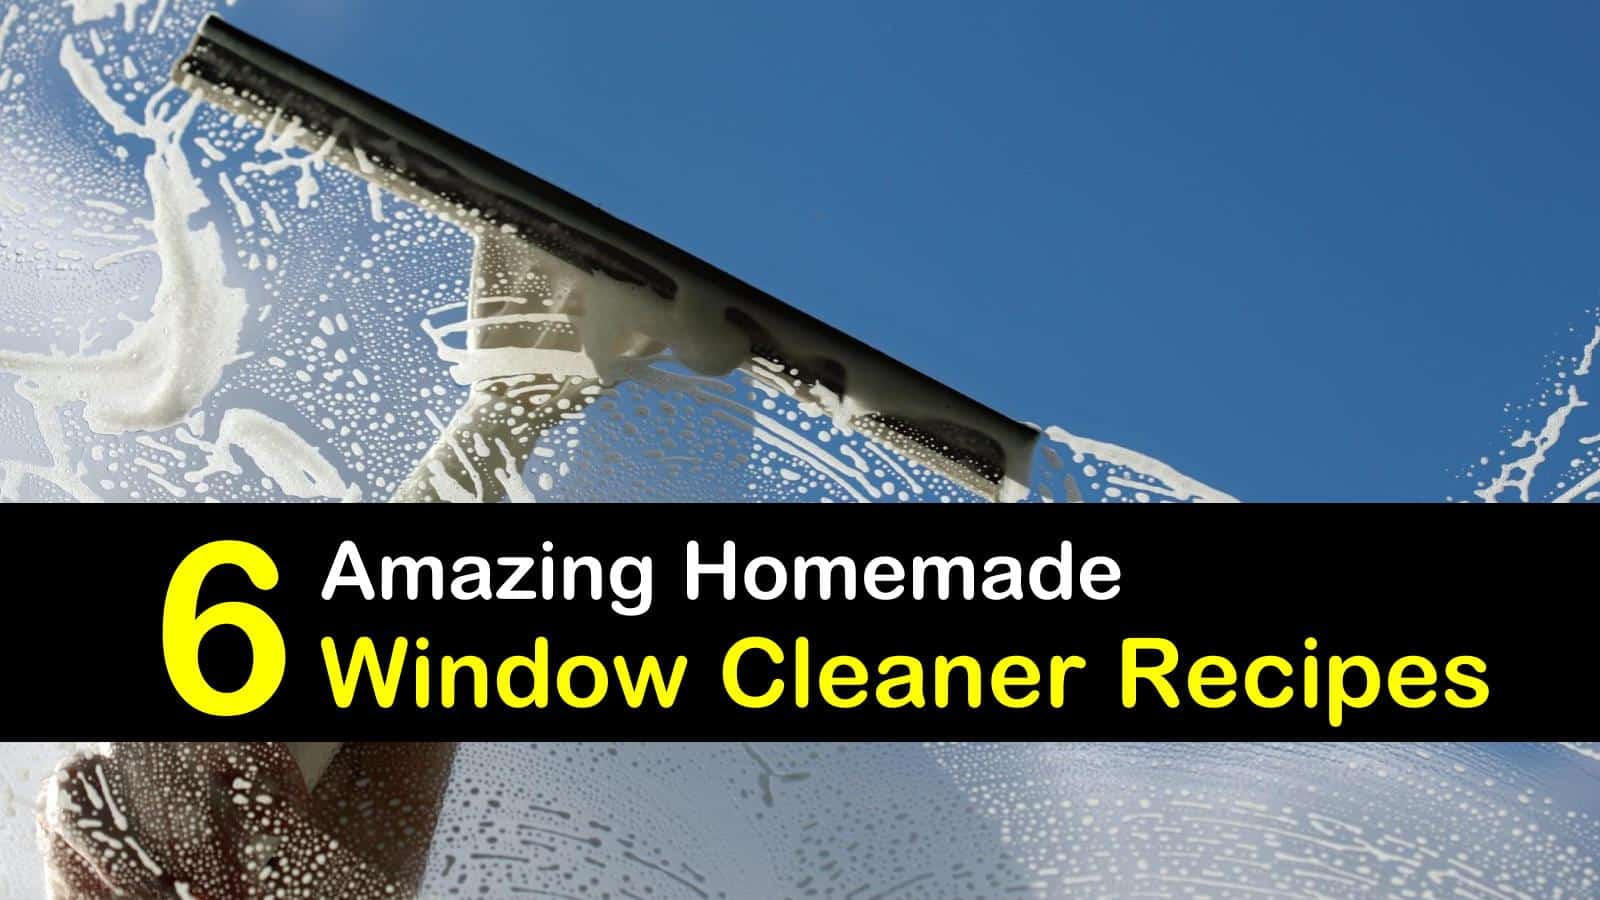 6 Amazing Homemade Window Cleaner Recipes